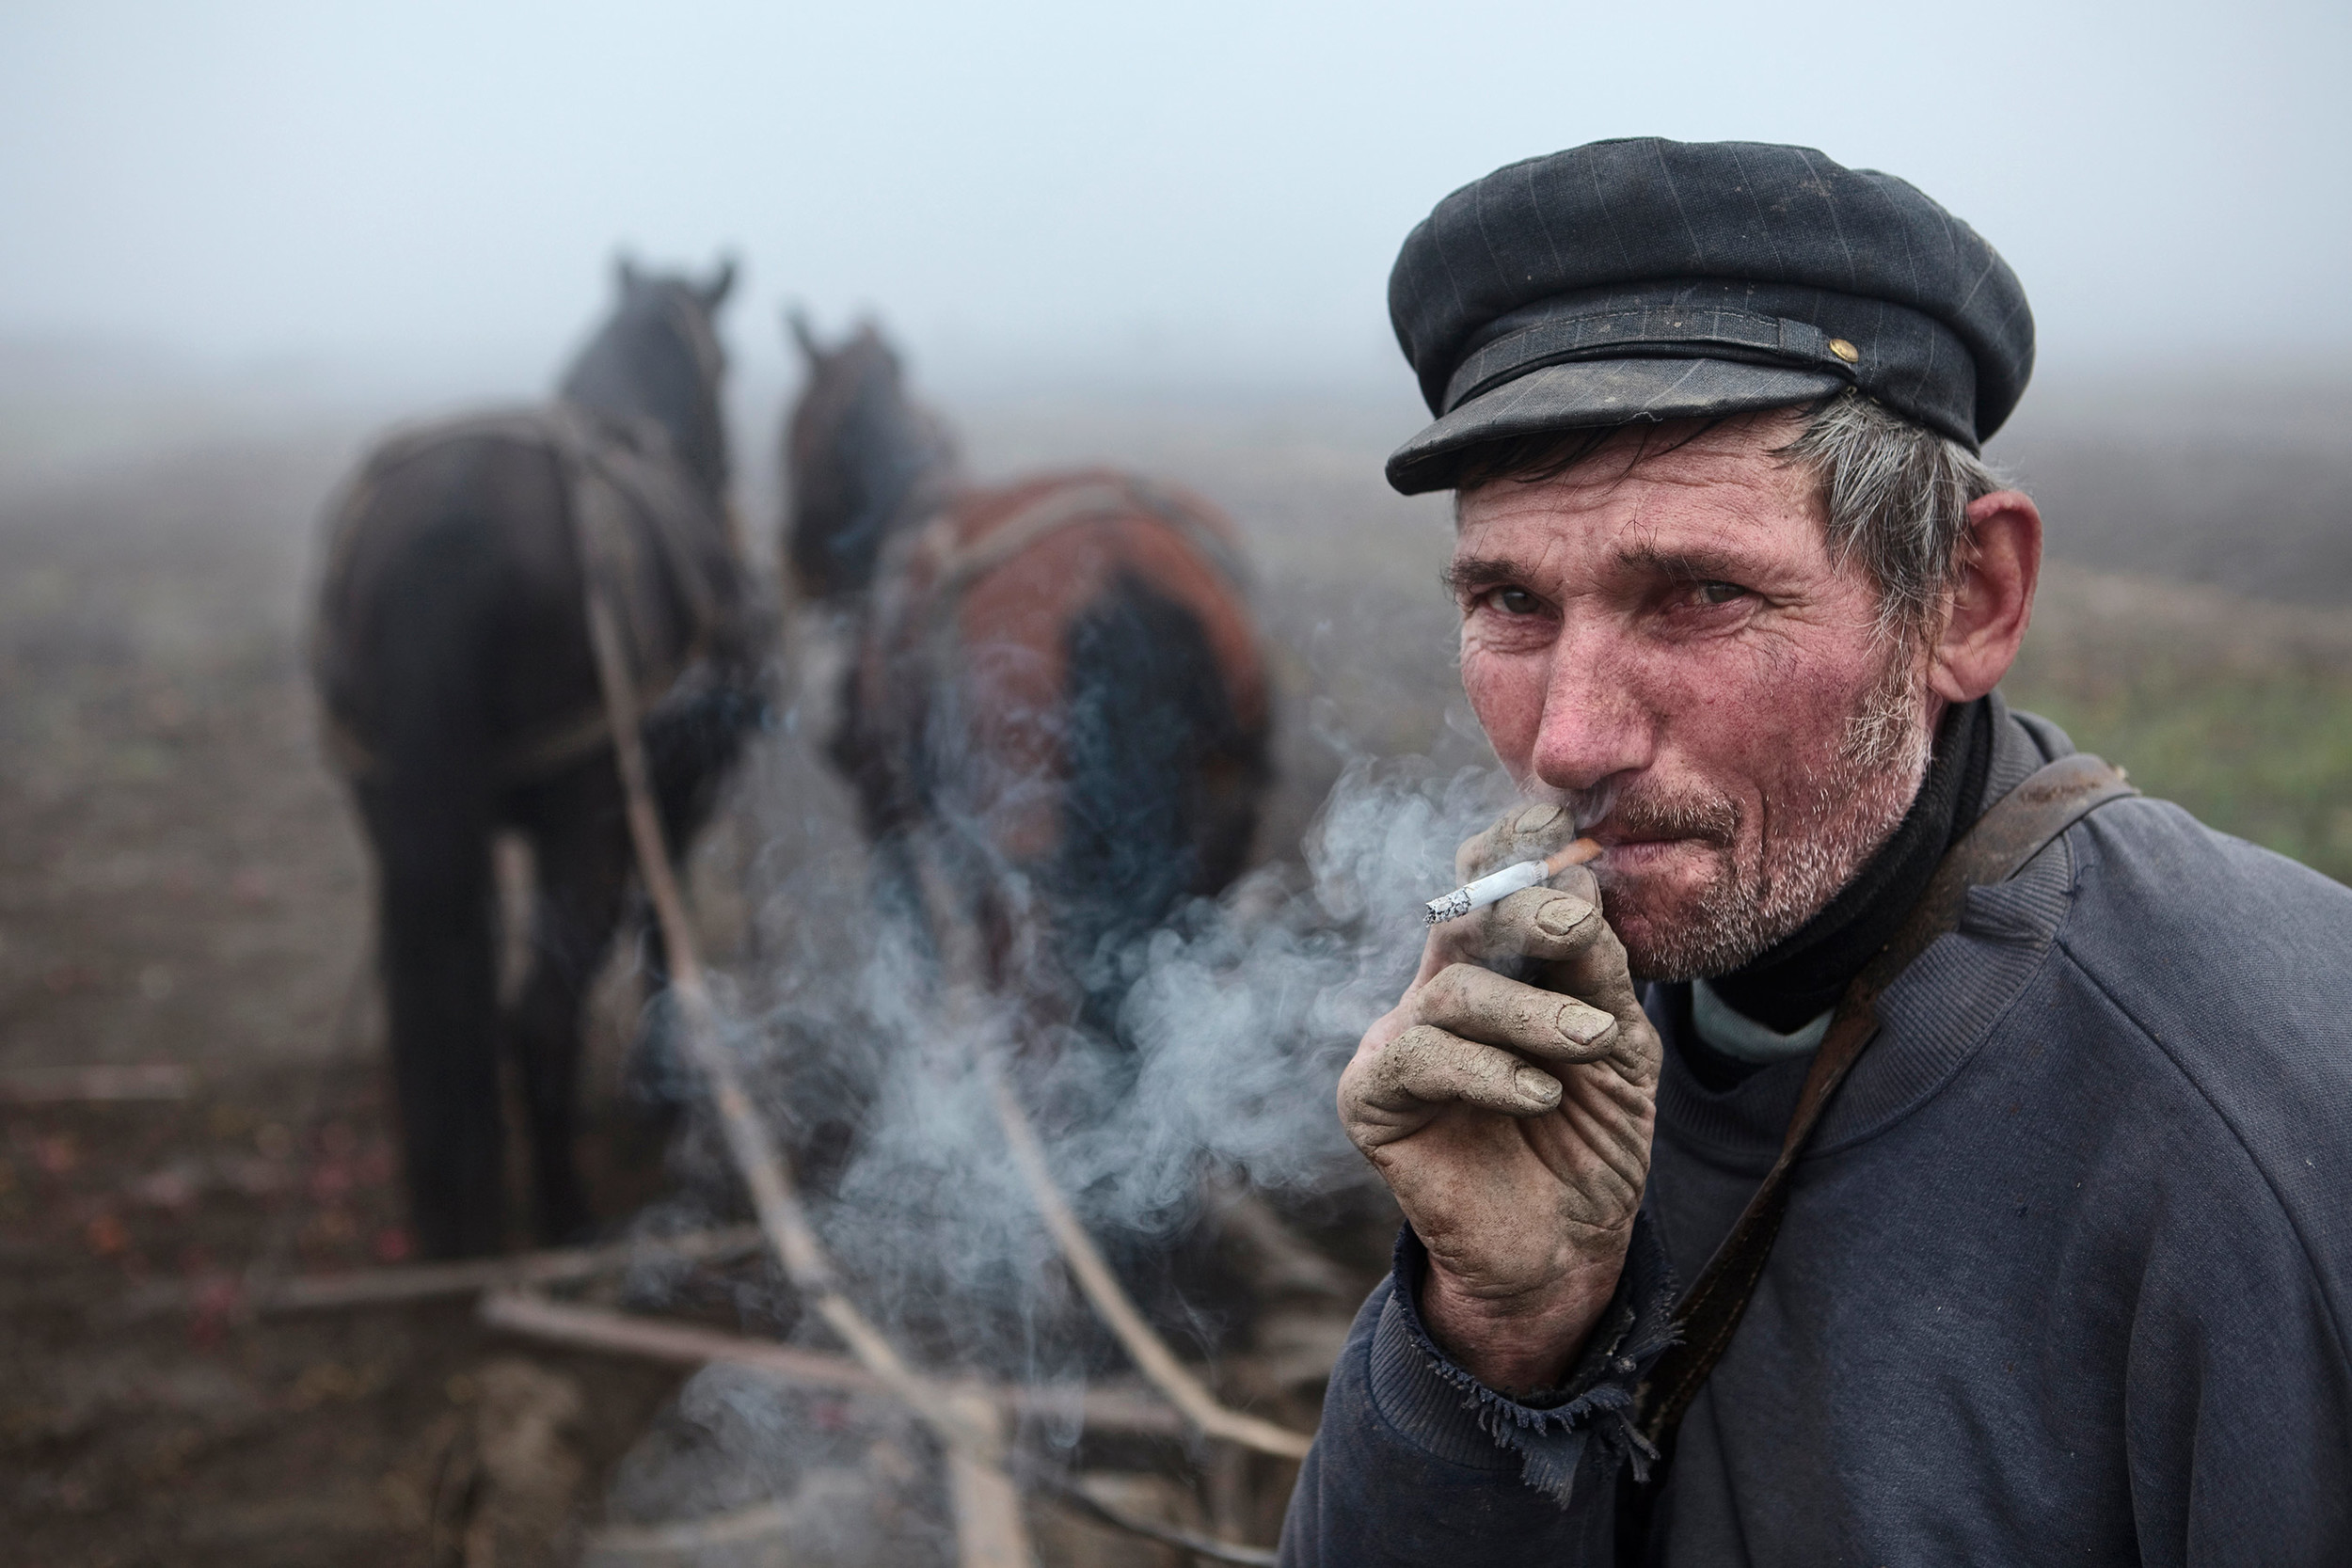 Romanian farmer in the fog